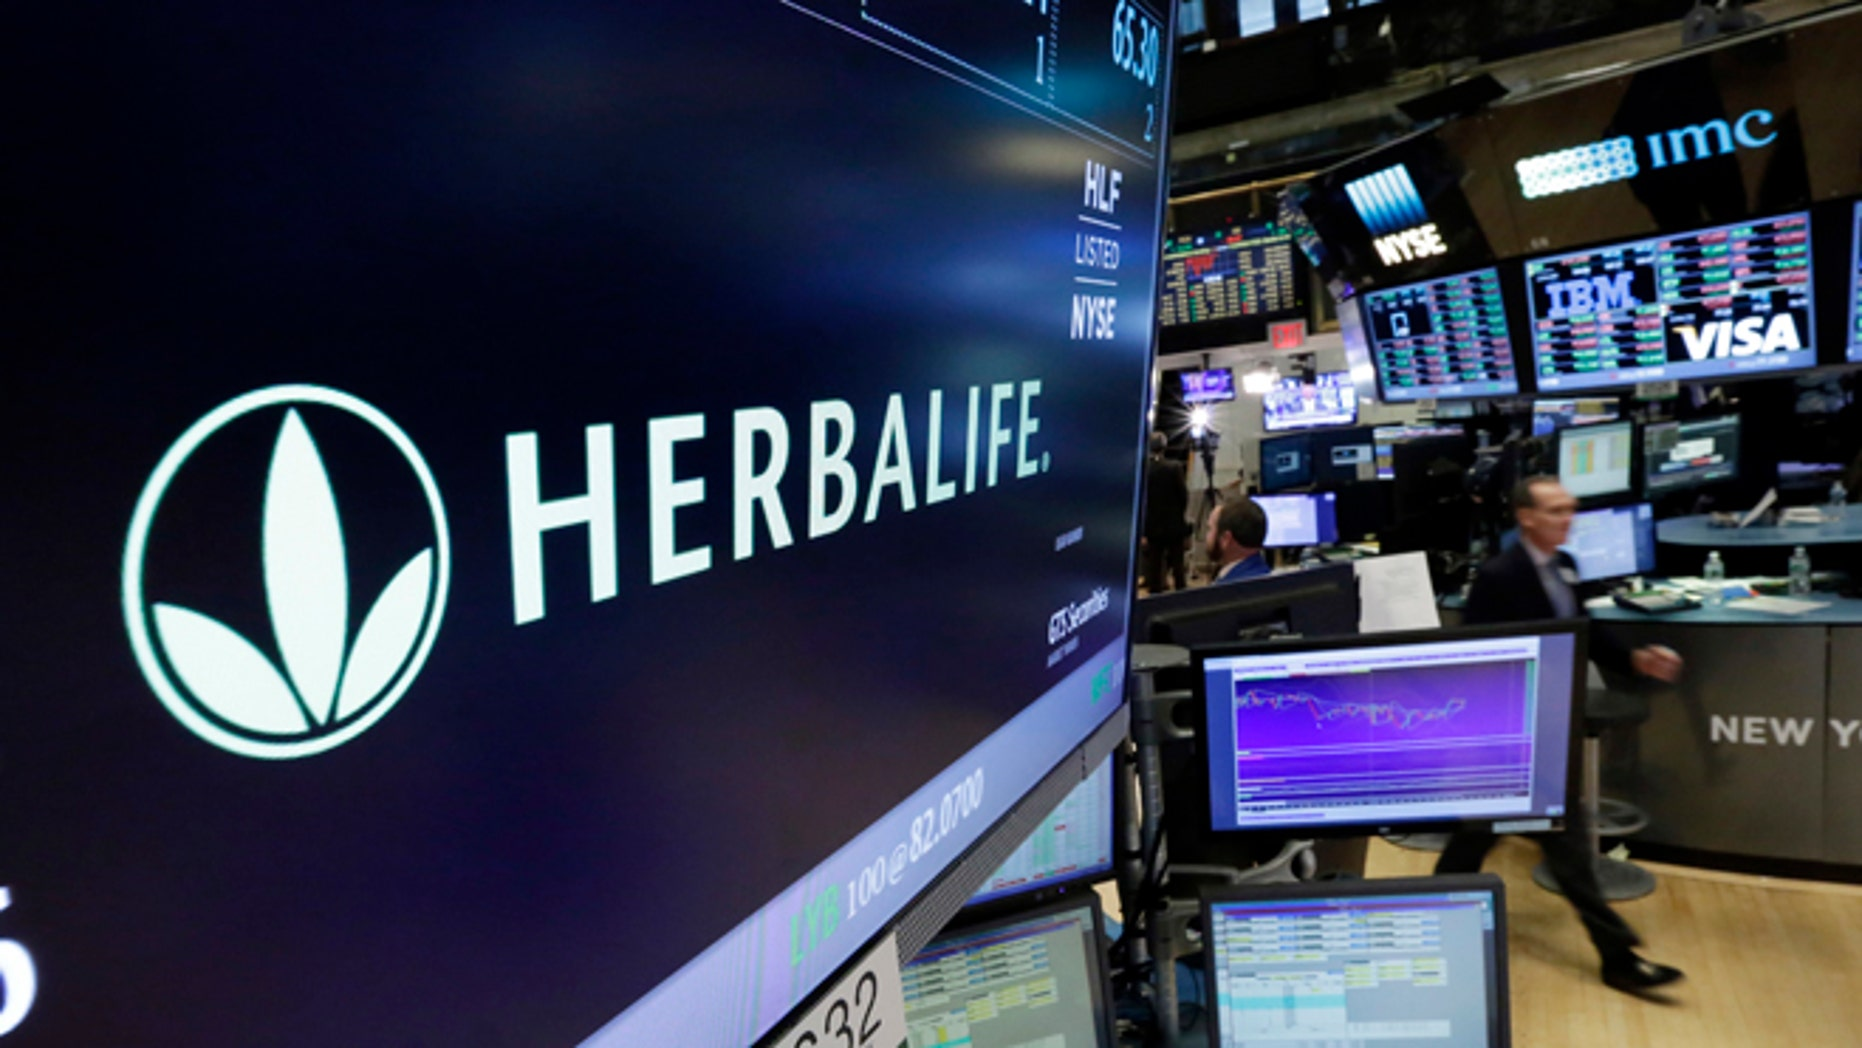 FILE - In this May 6, 2016 file photo, the Herbalife logo appears above the post where it trades on the floor of the New York Stock Exchange.   The Federal Trade Commission is closing an investigation of Herbalife and the multinational, nutritional supplements company will to pay $200 million to settlement allegations that it deceived consumers.  The company said in a written statement on Friday, July 15,  that the FTC settlement doesnââ¬â¢t change its business model as a direct selling company. (AP Photo/Richard Drew)